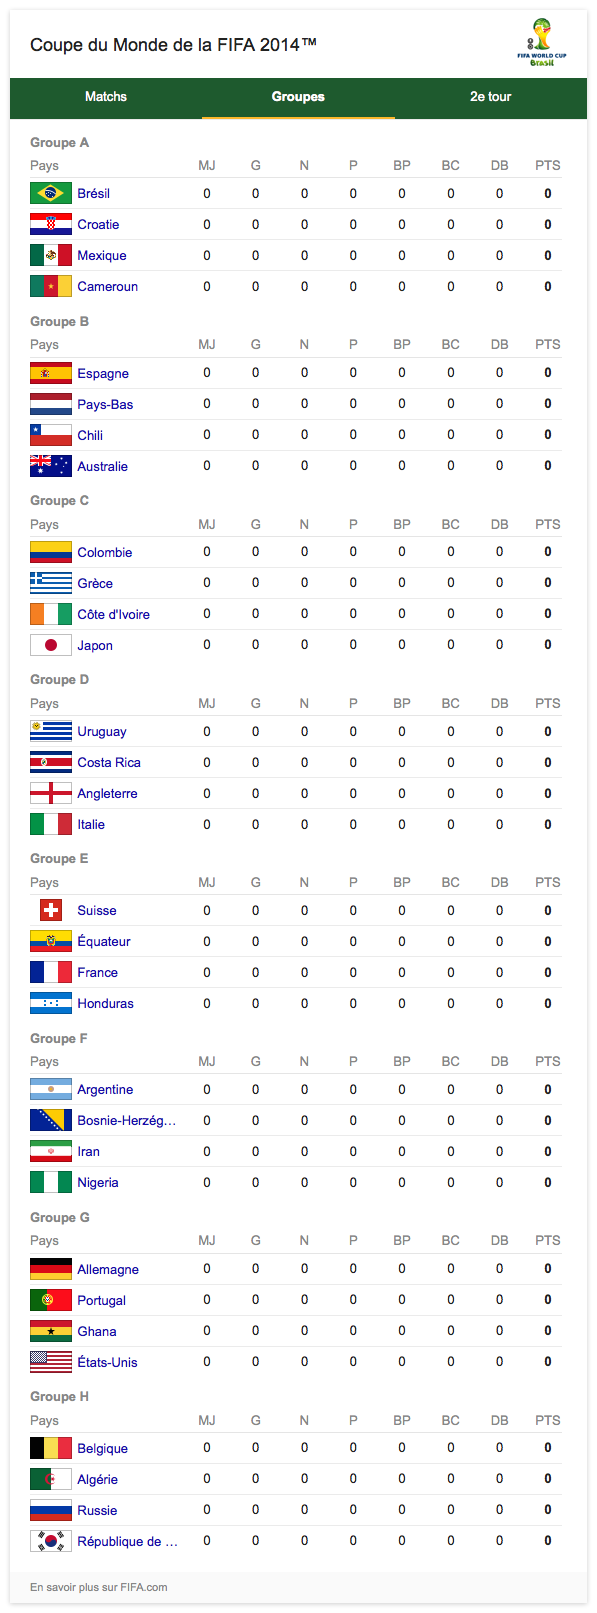 Google : Coupe du Monde de Foot 2014 - Groupes